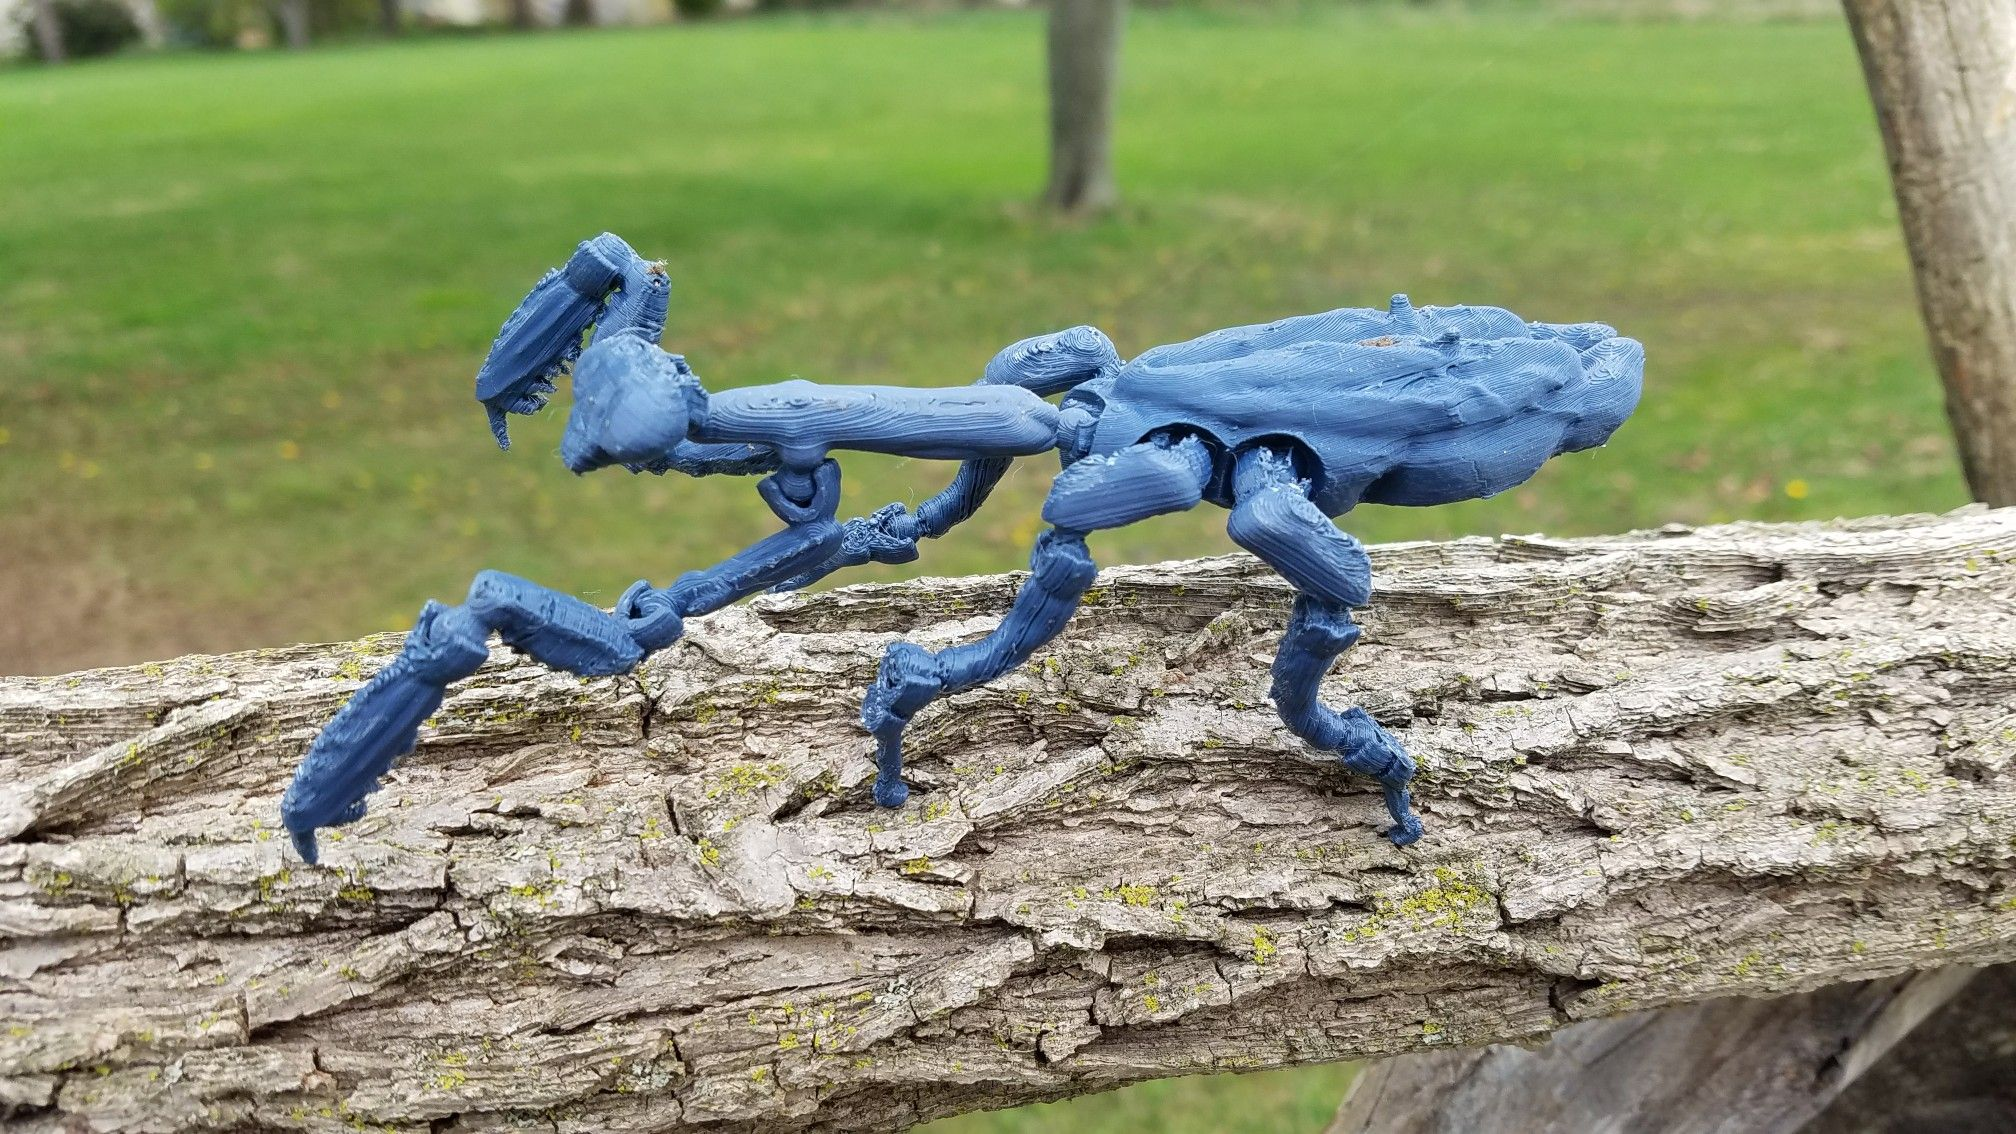 Fully Articulated Praying Mantis printed with Flashforge Finder and